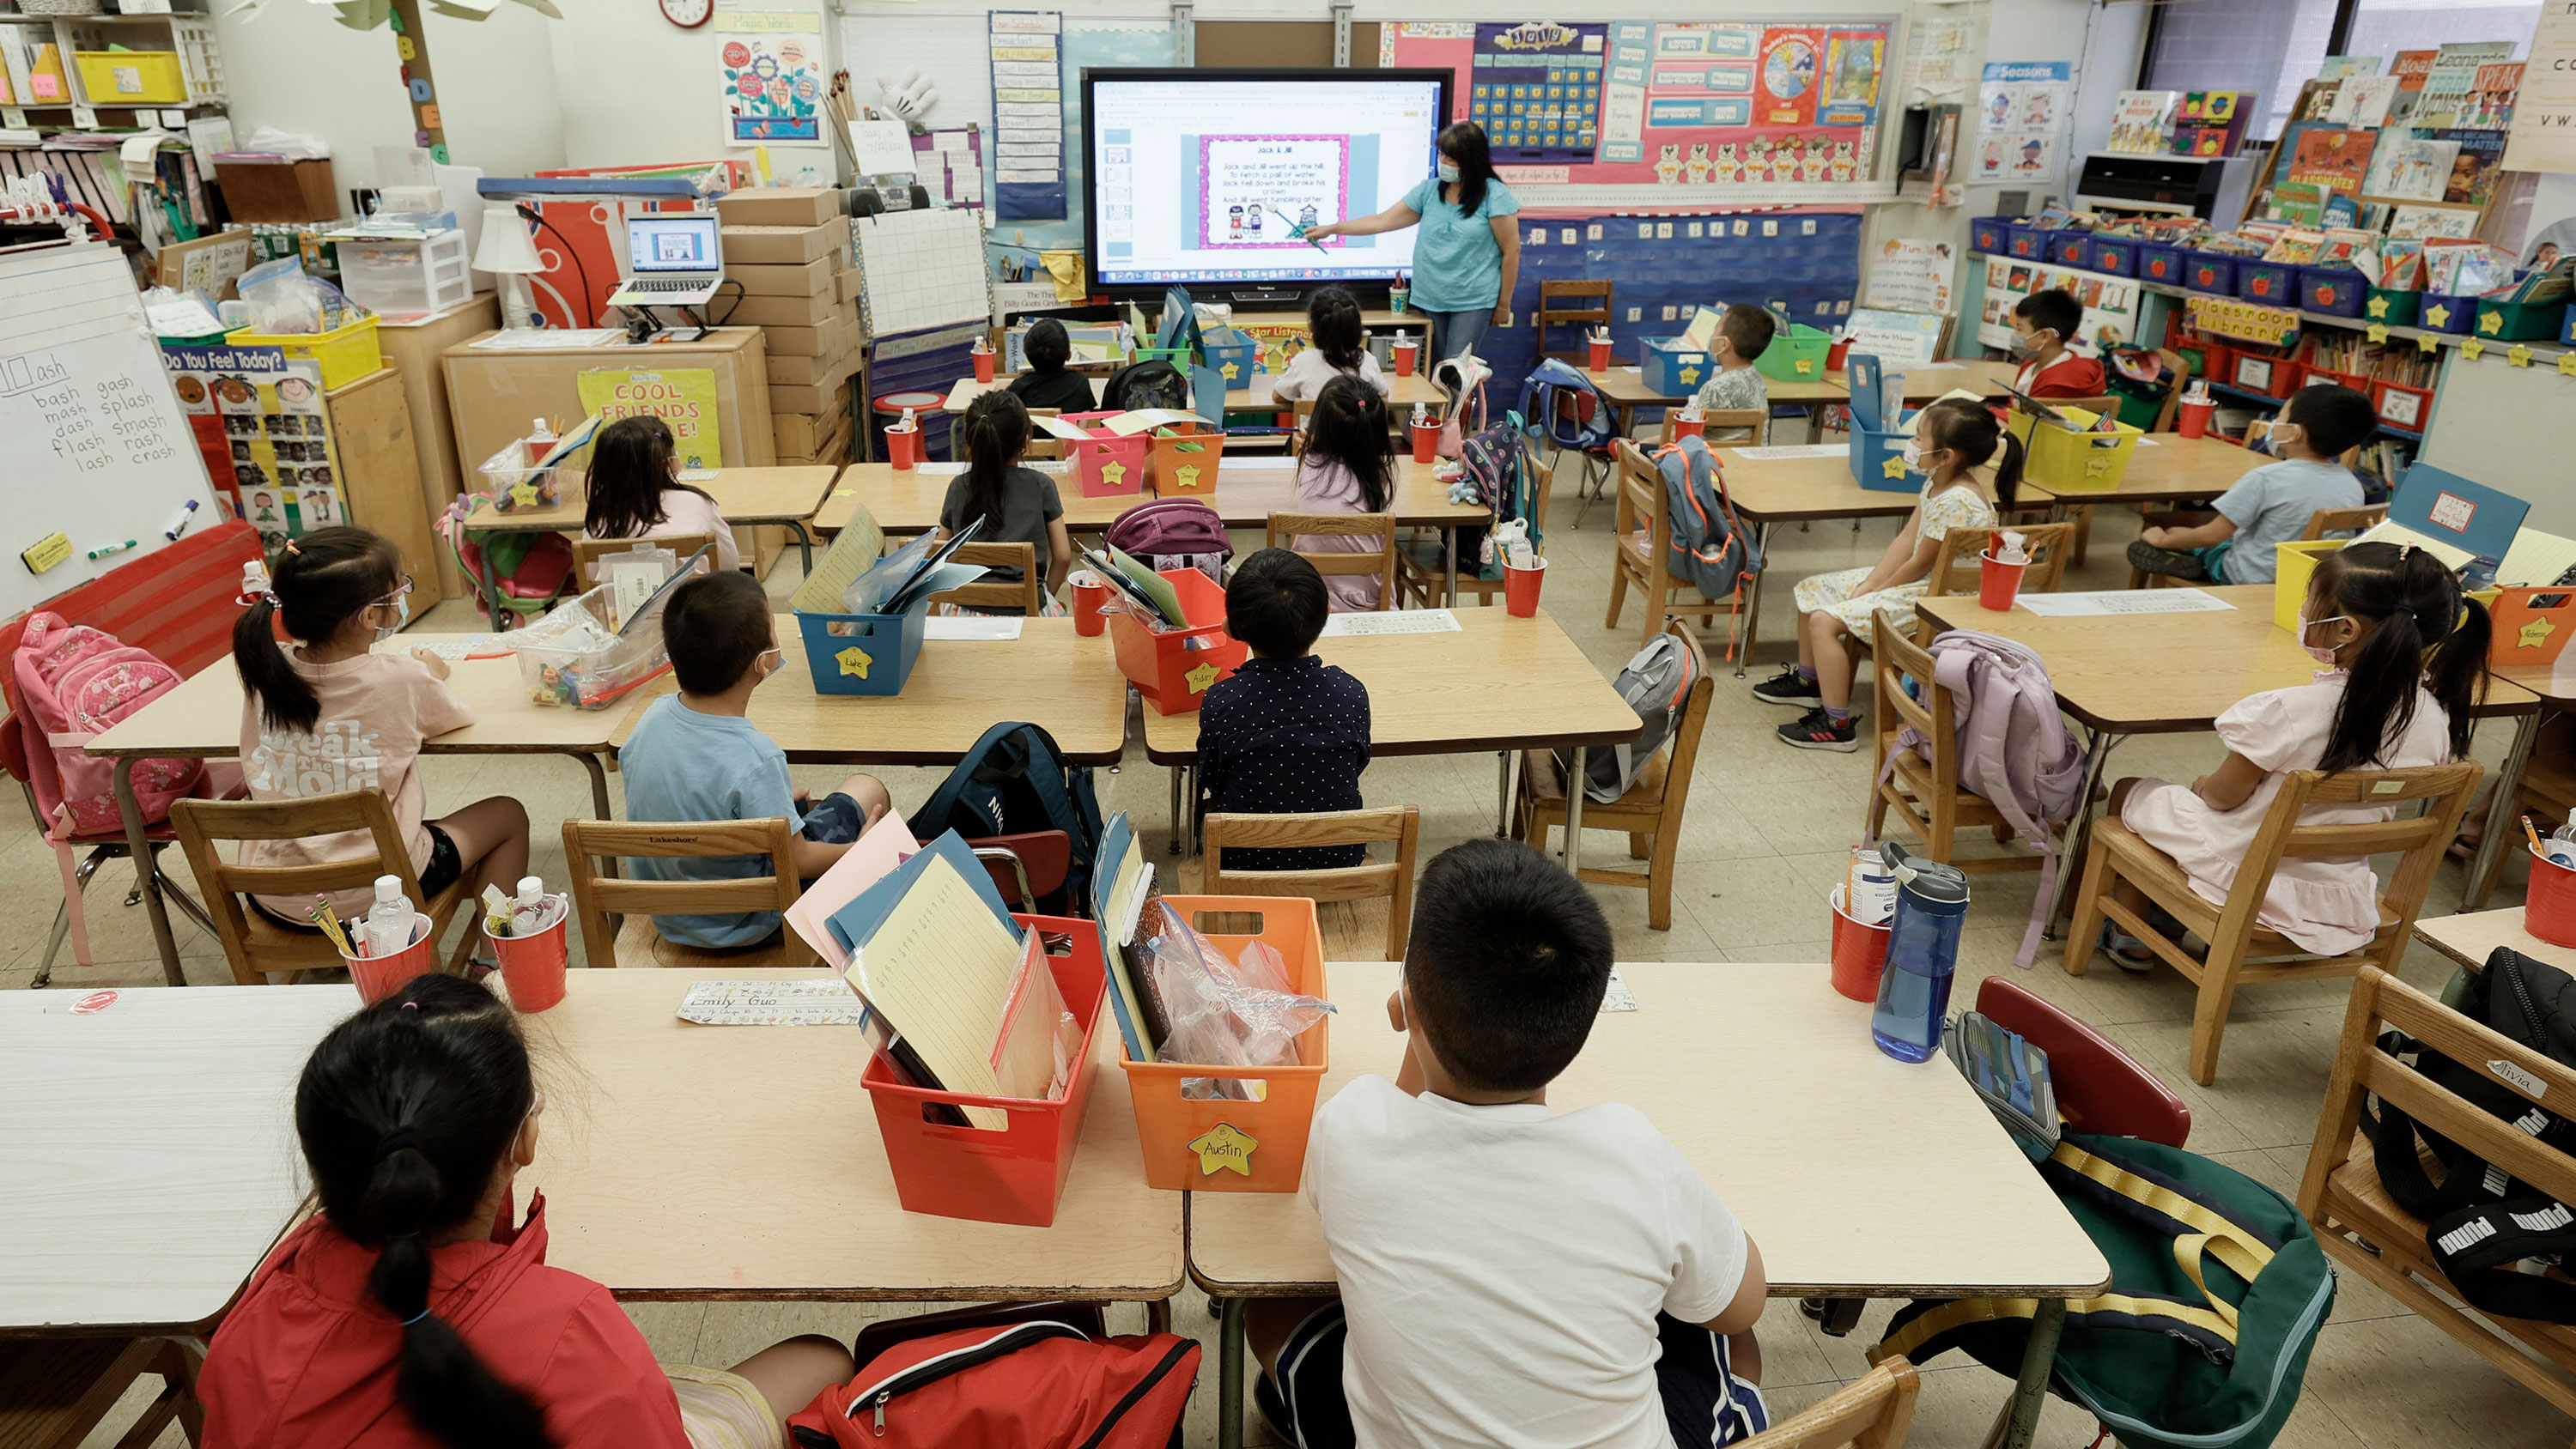 A teacher at Yung Wing School in New York, goes over a lesson on a monitor with in-person Summer program students on July 22, 2021 in New York City. Positive COVID-19 cases in some New York City public schools have resulted in classroom quarantines.(Photo by Michael Loccisano/Getty Images)